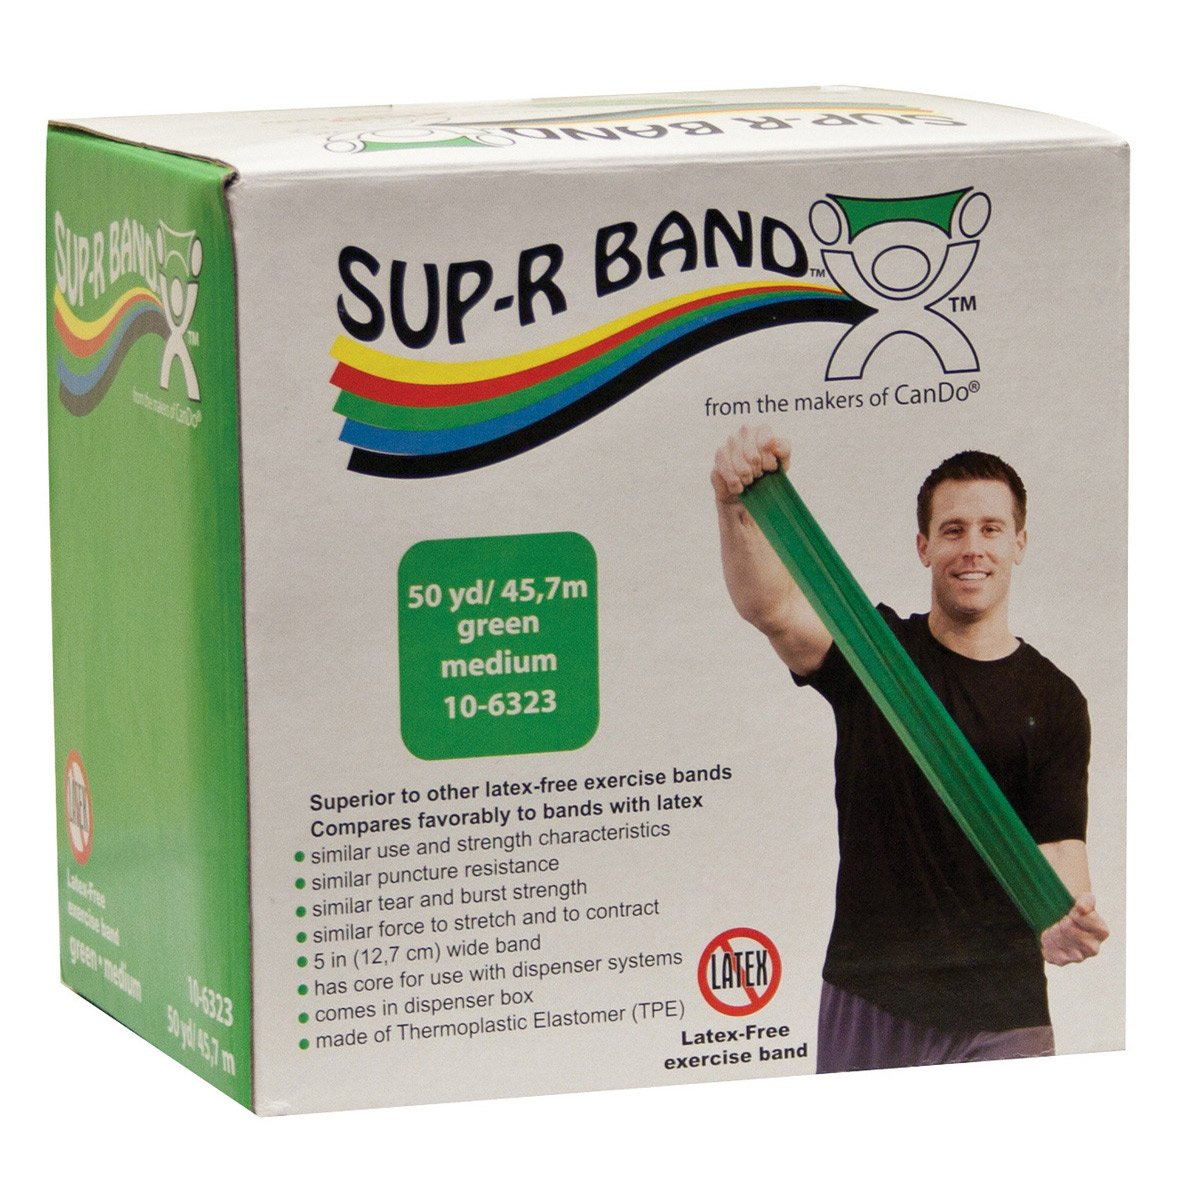 CanDo Sup-R Band Latex Free Exercise Band, 50 Yard Roll, Green, Level 3, Medium Resistance